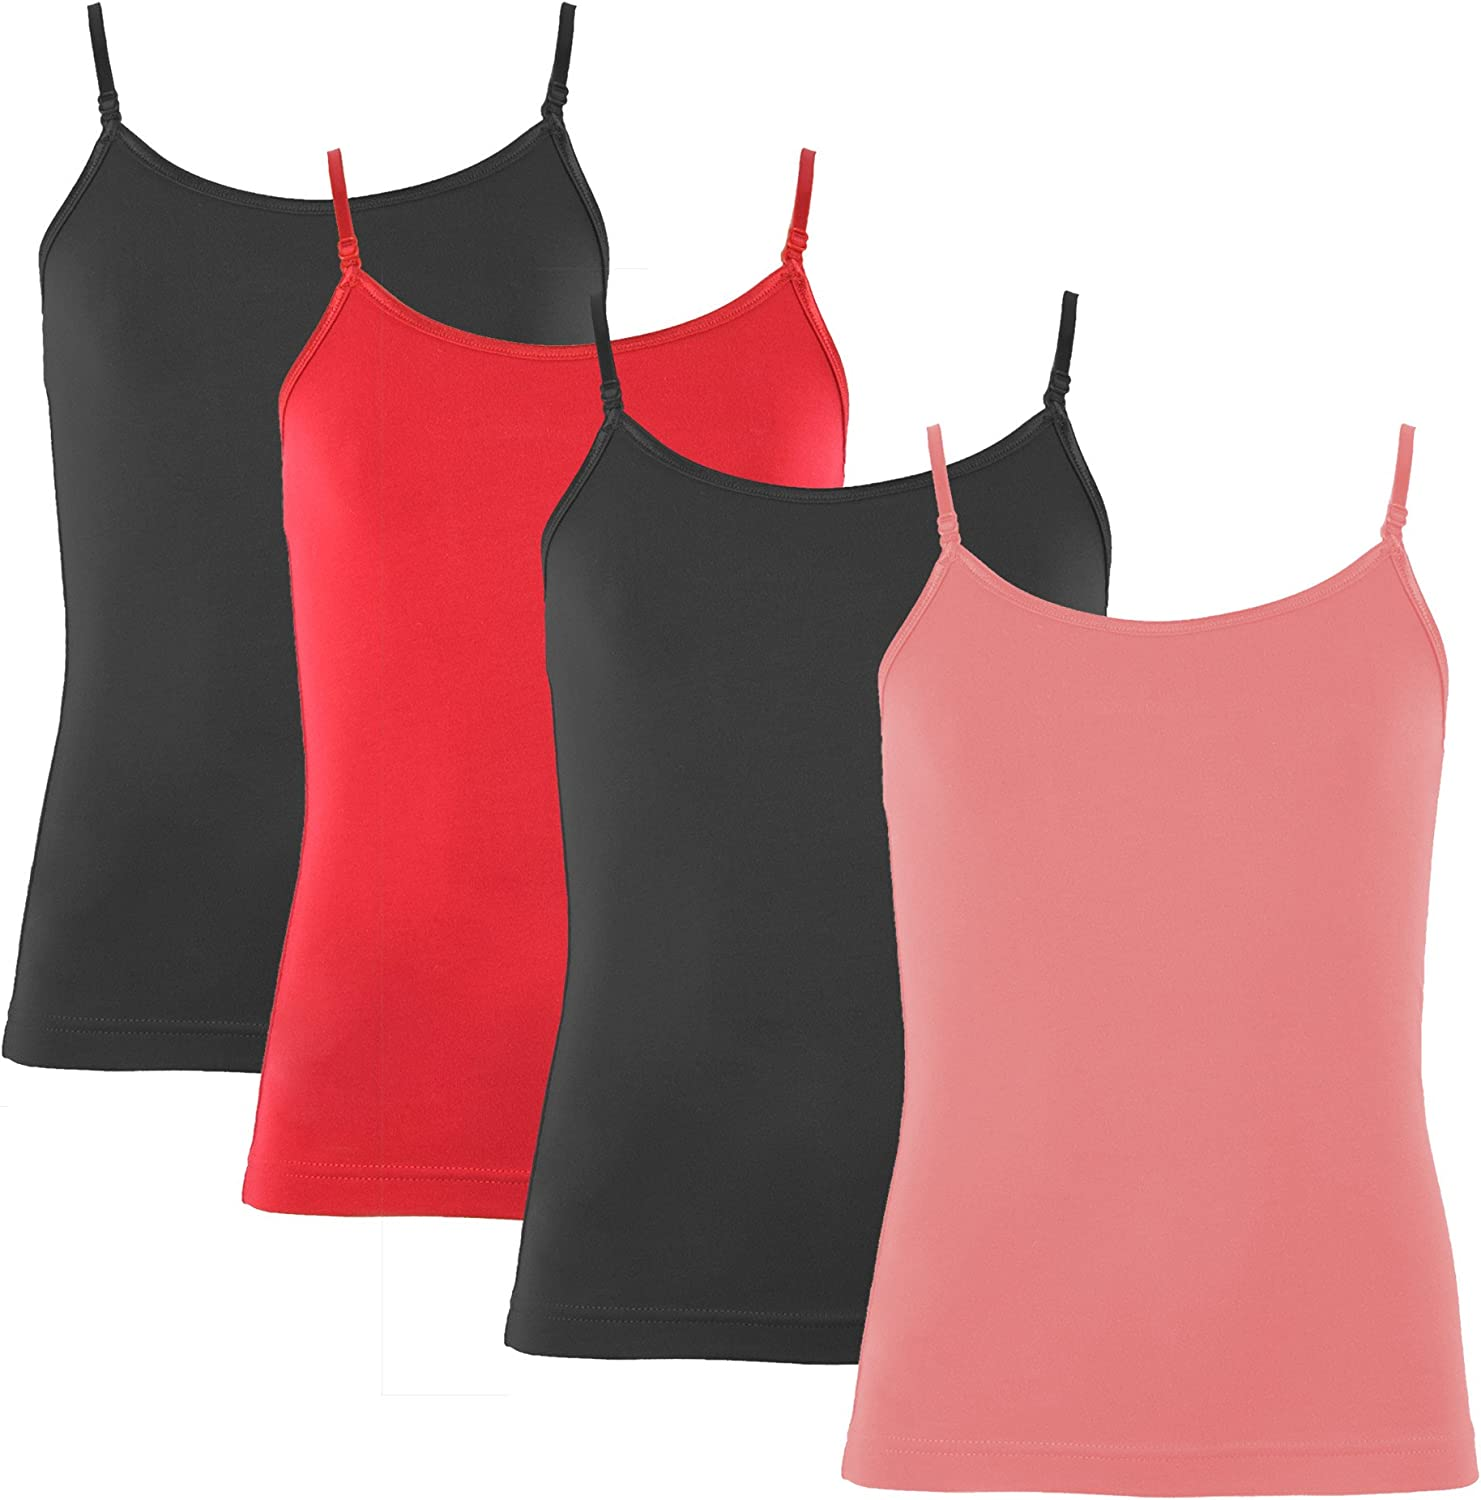 4 Pack Popular Girls Cotton Camisole with Adjustable Straps